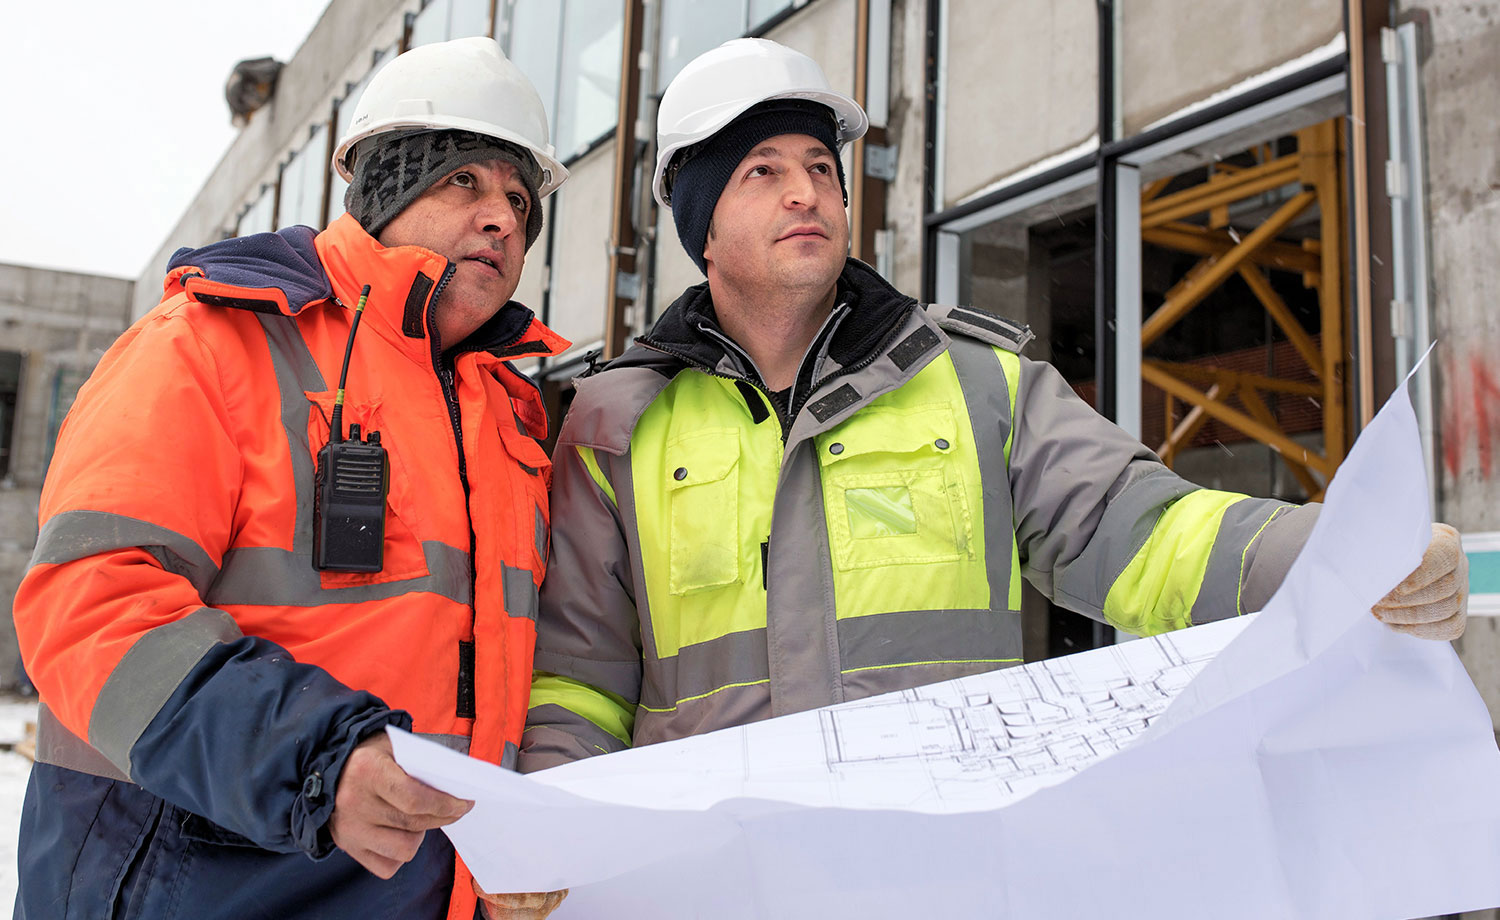 Two men in hard hats looking over plans.